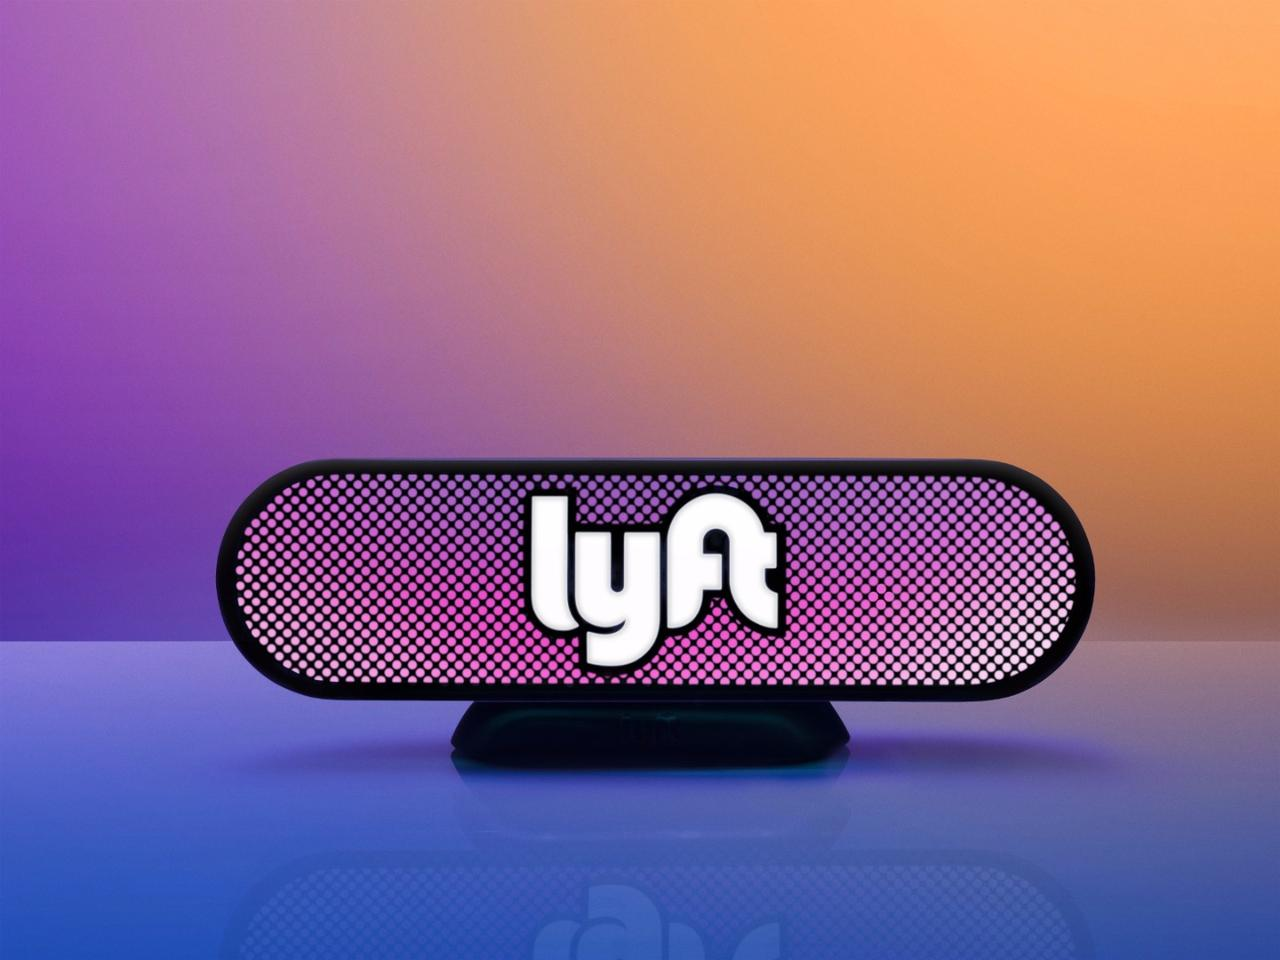 The Lyft Amp will have a front-facing LED display that will be visible through the windshield, the LEDs of which will change color to match a color displayed in-app on the passenger's phone